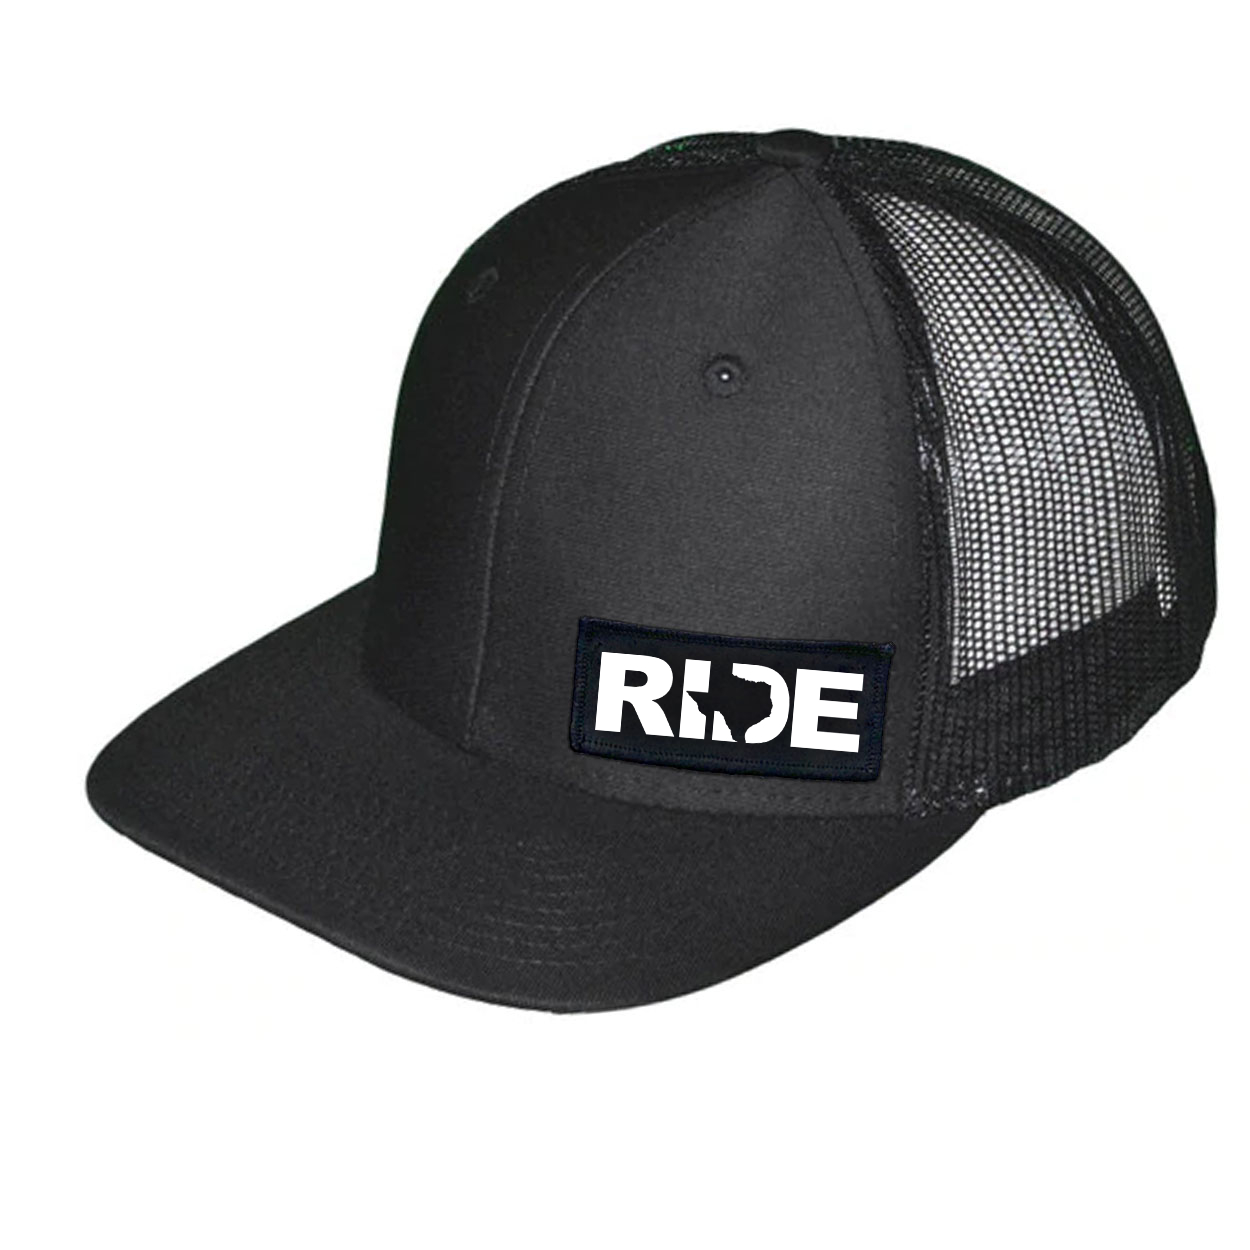 Ride Texas Night Out Woven Patch Snapback Trucker Hat Black (White Logo)